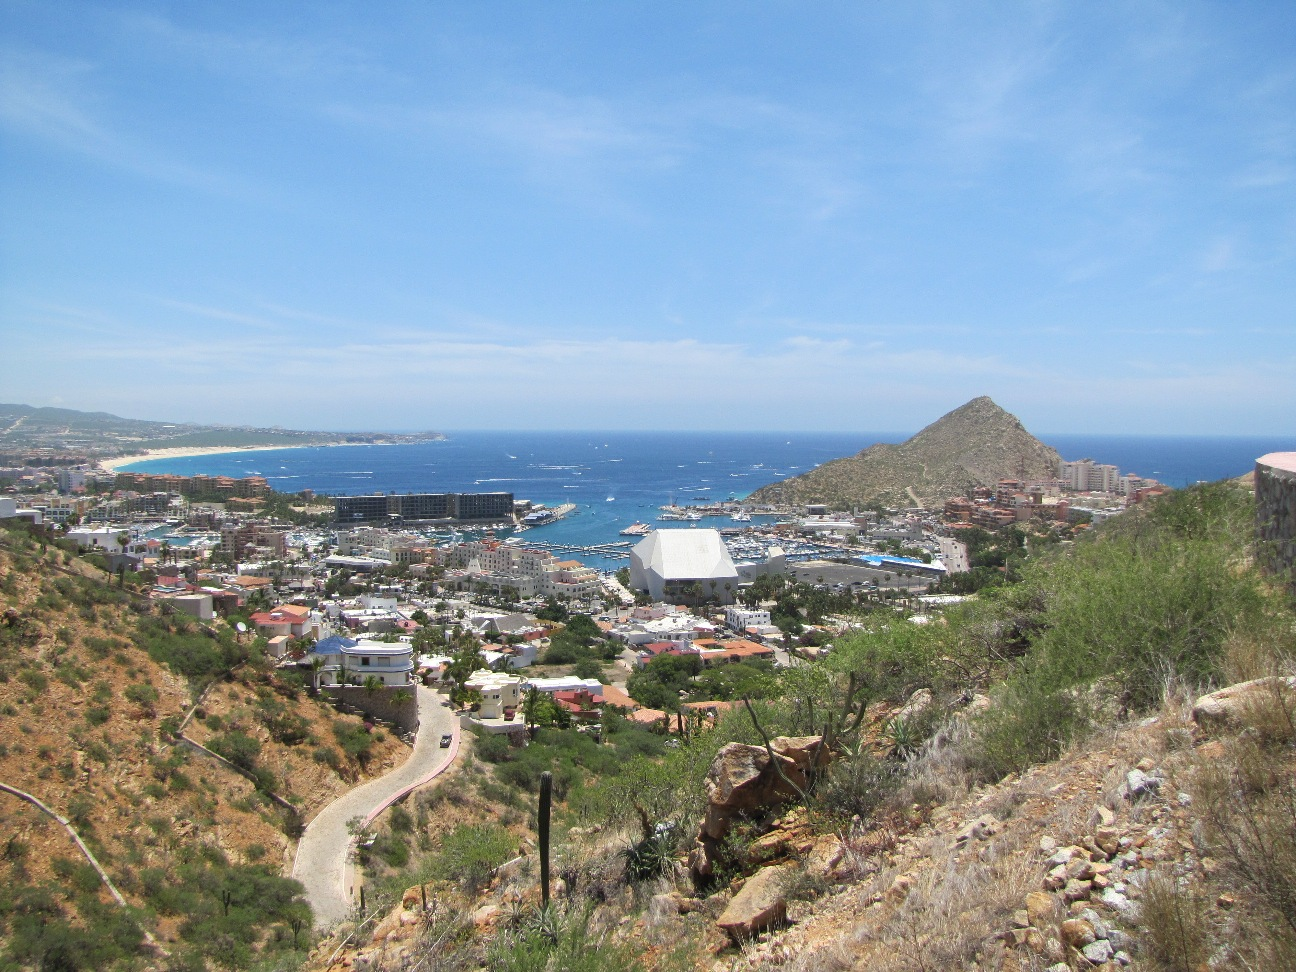 Luxury homes in cabo san lucas pedregal cabo san lucas for Pedregal cabo san lucas